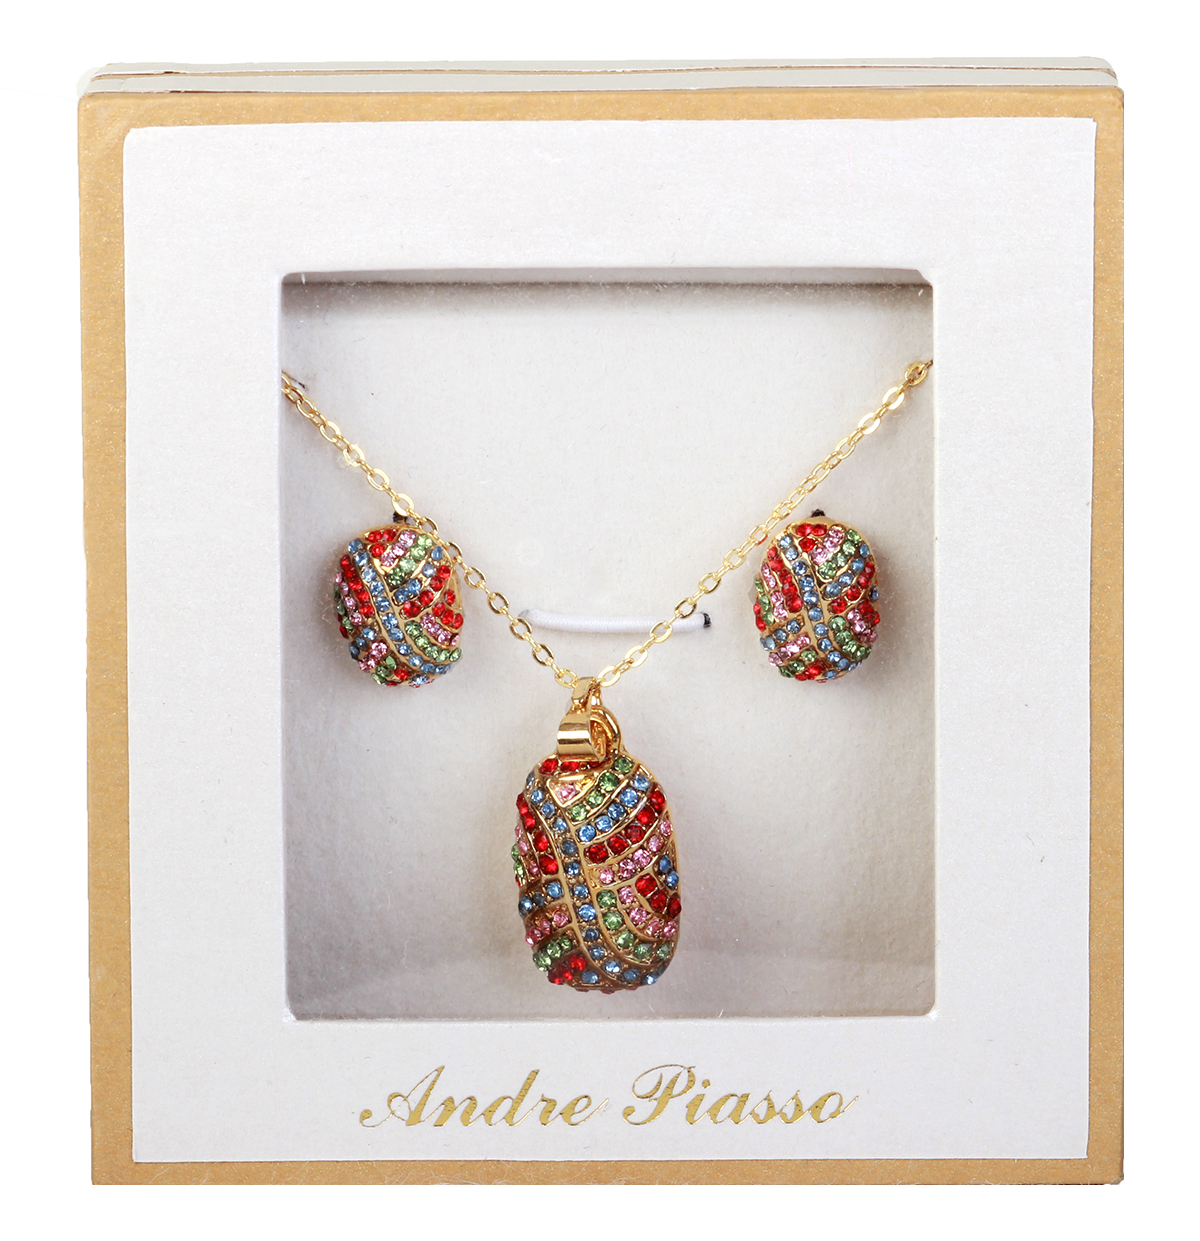 Andre Picasso Necklace and Earring gift set